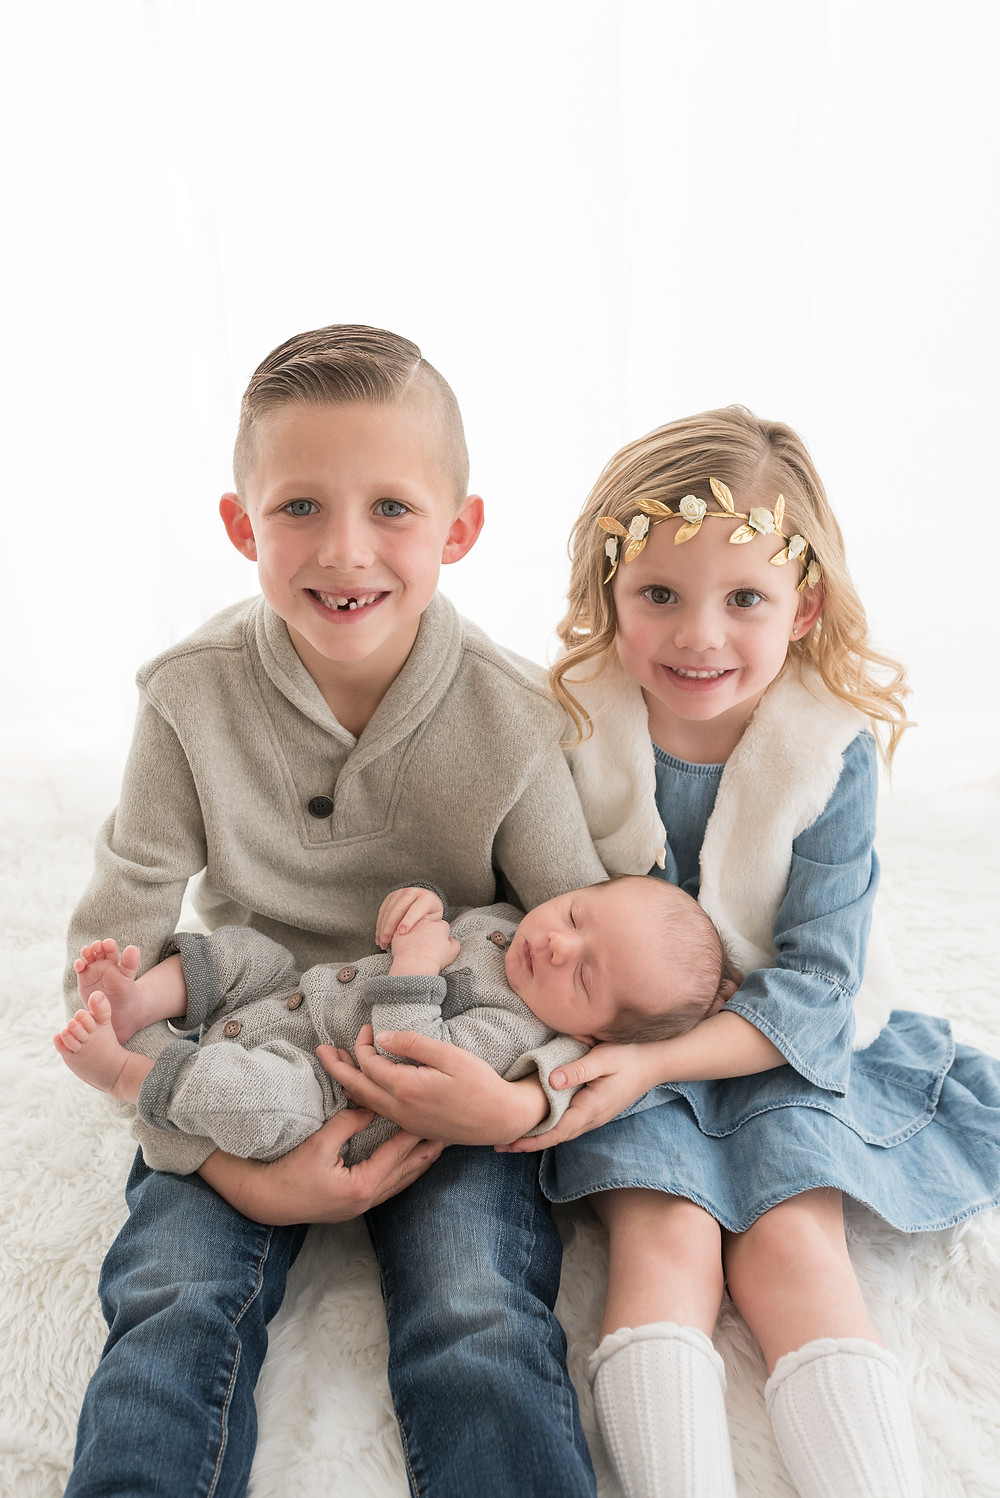 Newborn Photo, Siblings, Cedar City Utah, Studio Photographer